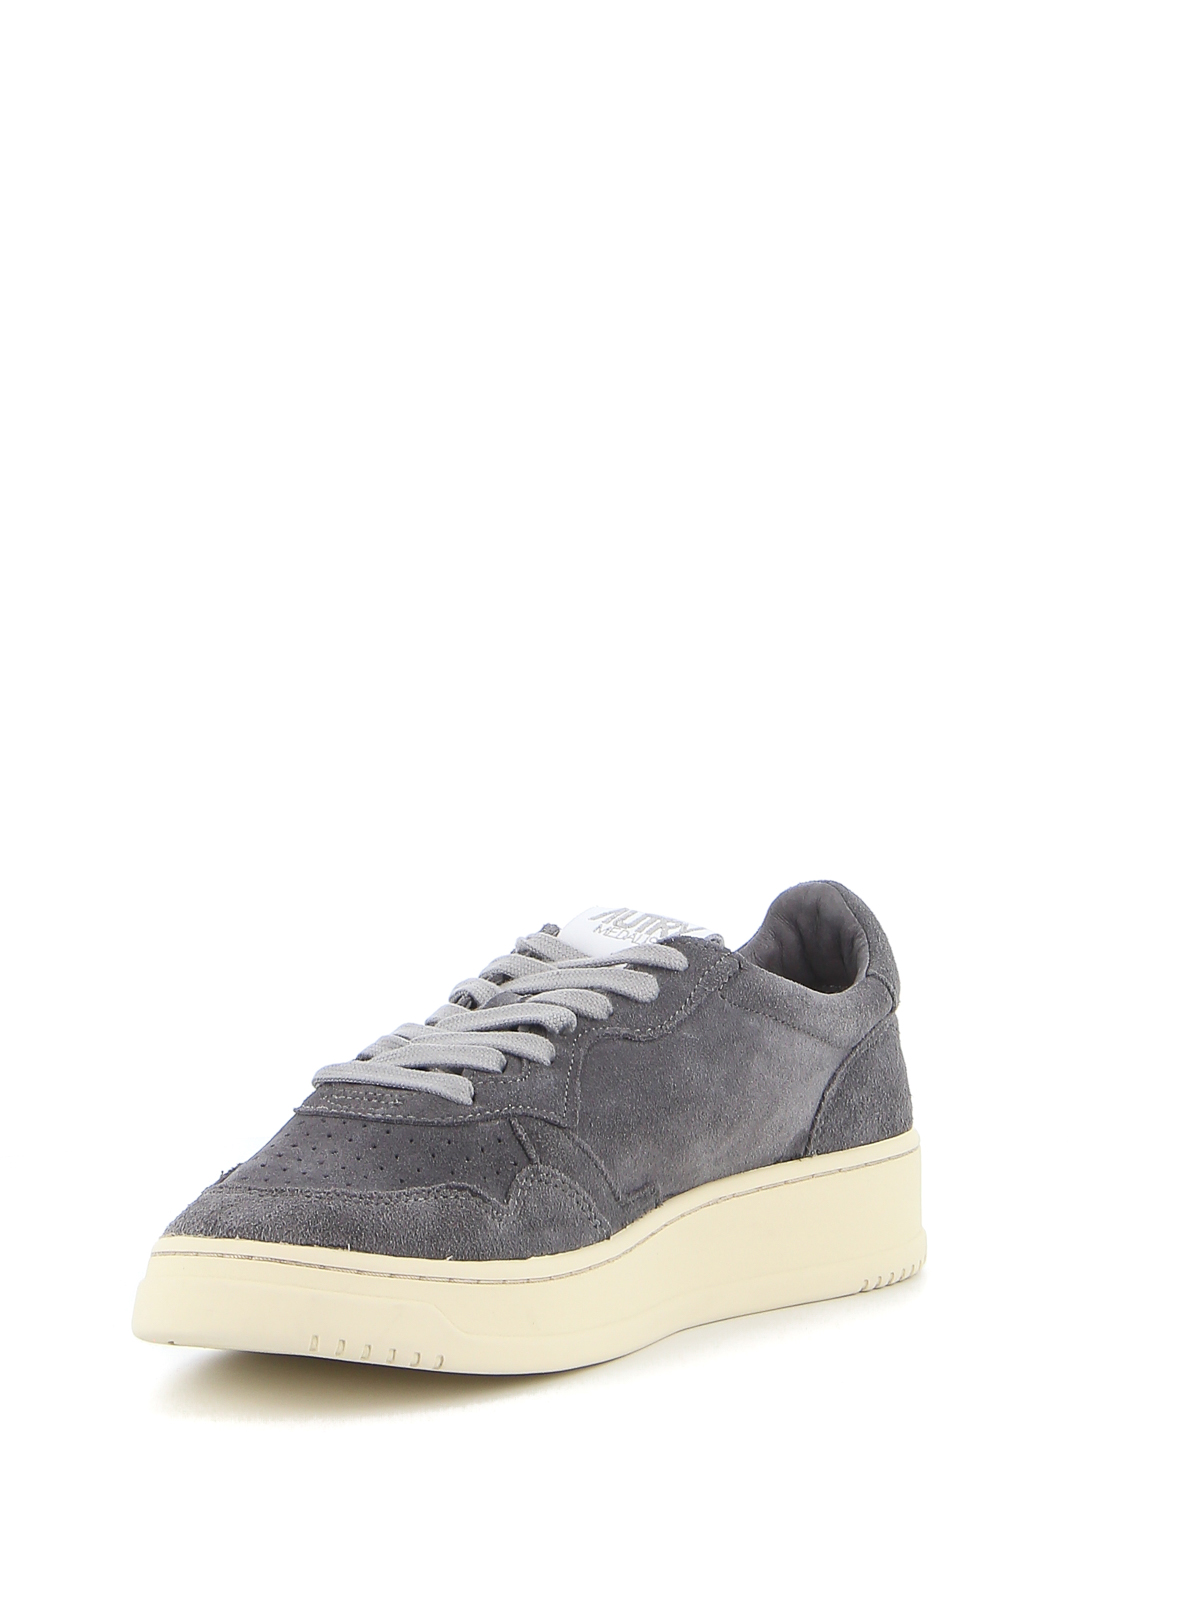 Immagine di Autry | Autry 01 Low Suede